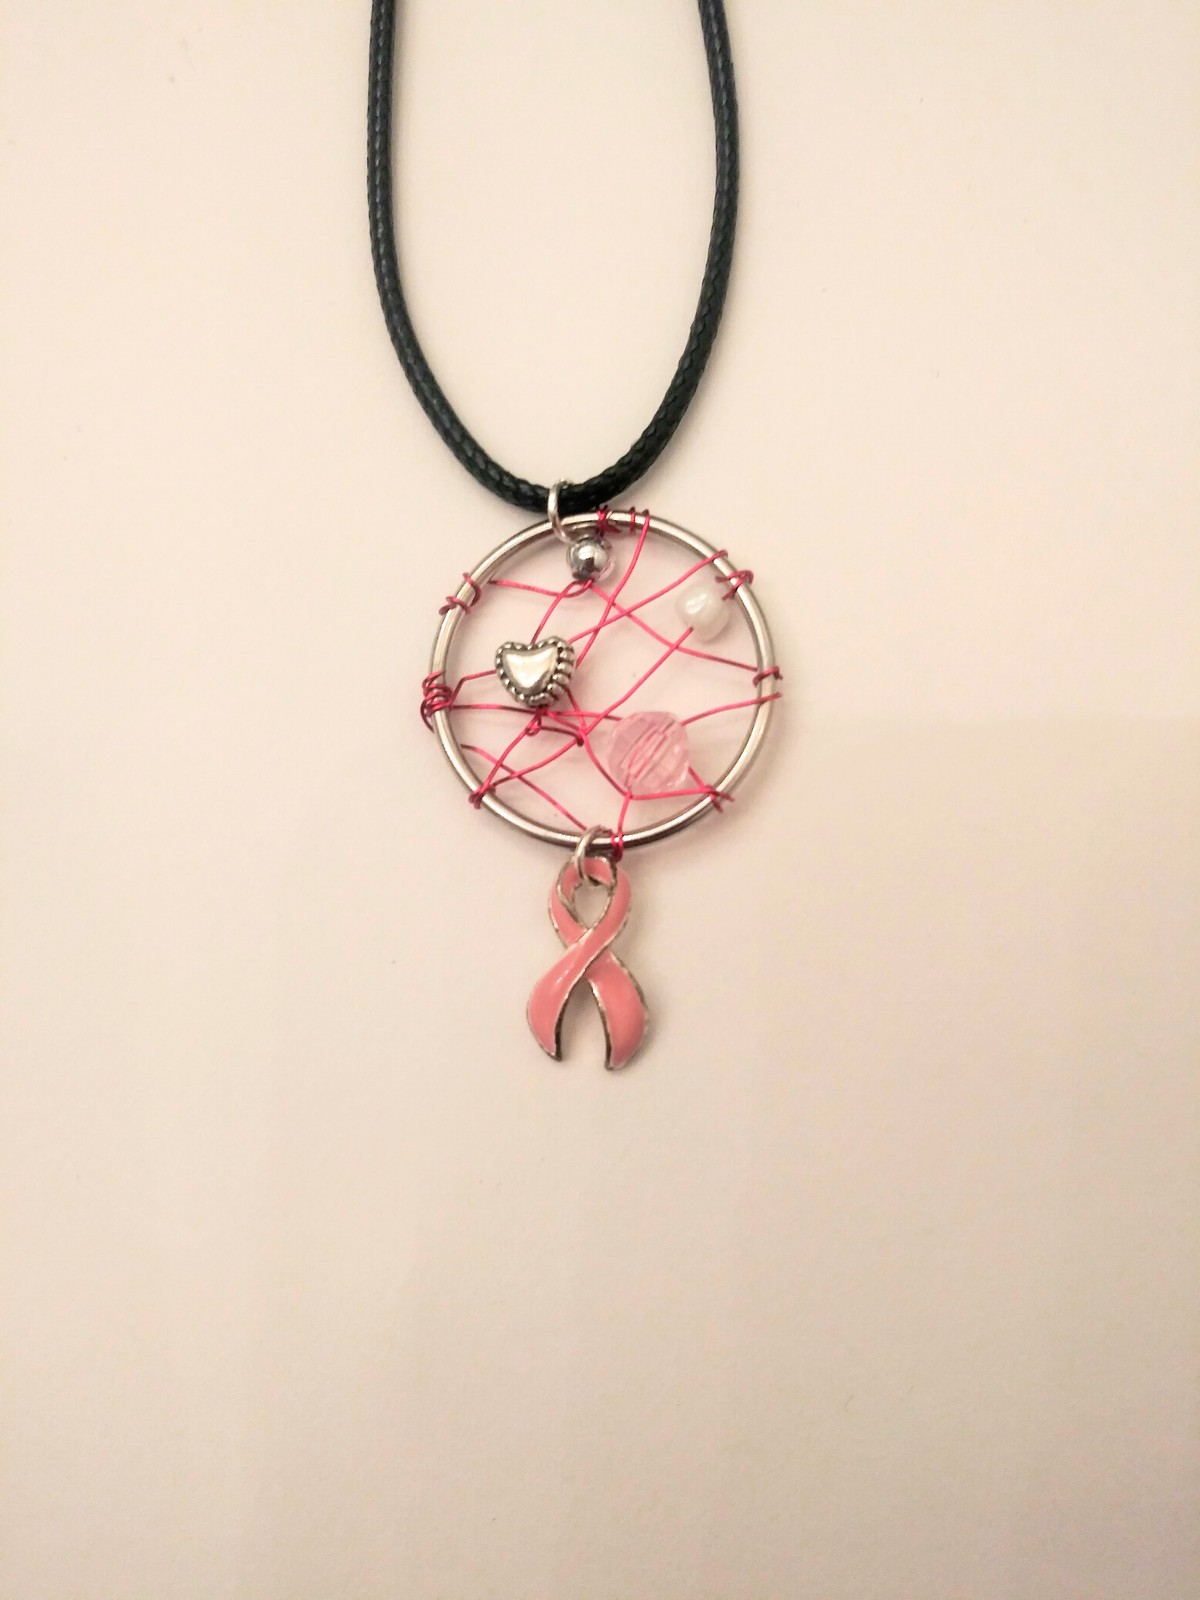 Handmade pink silver and white breast cancer necklace